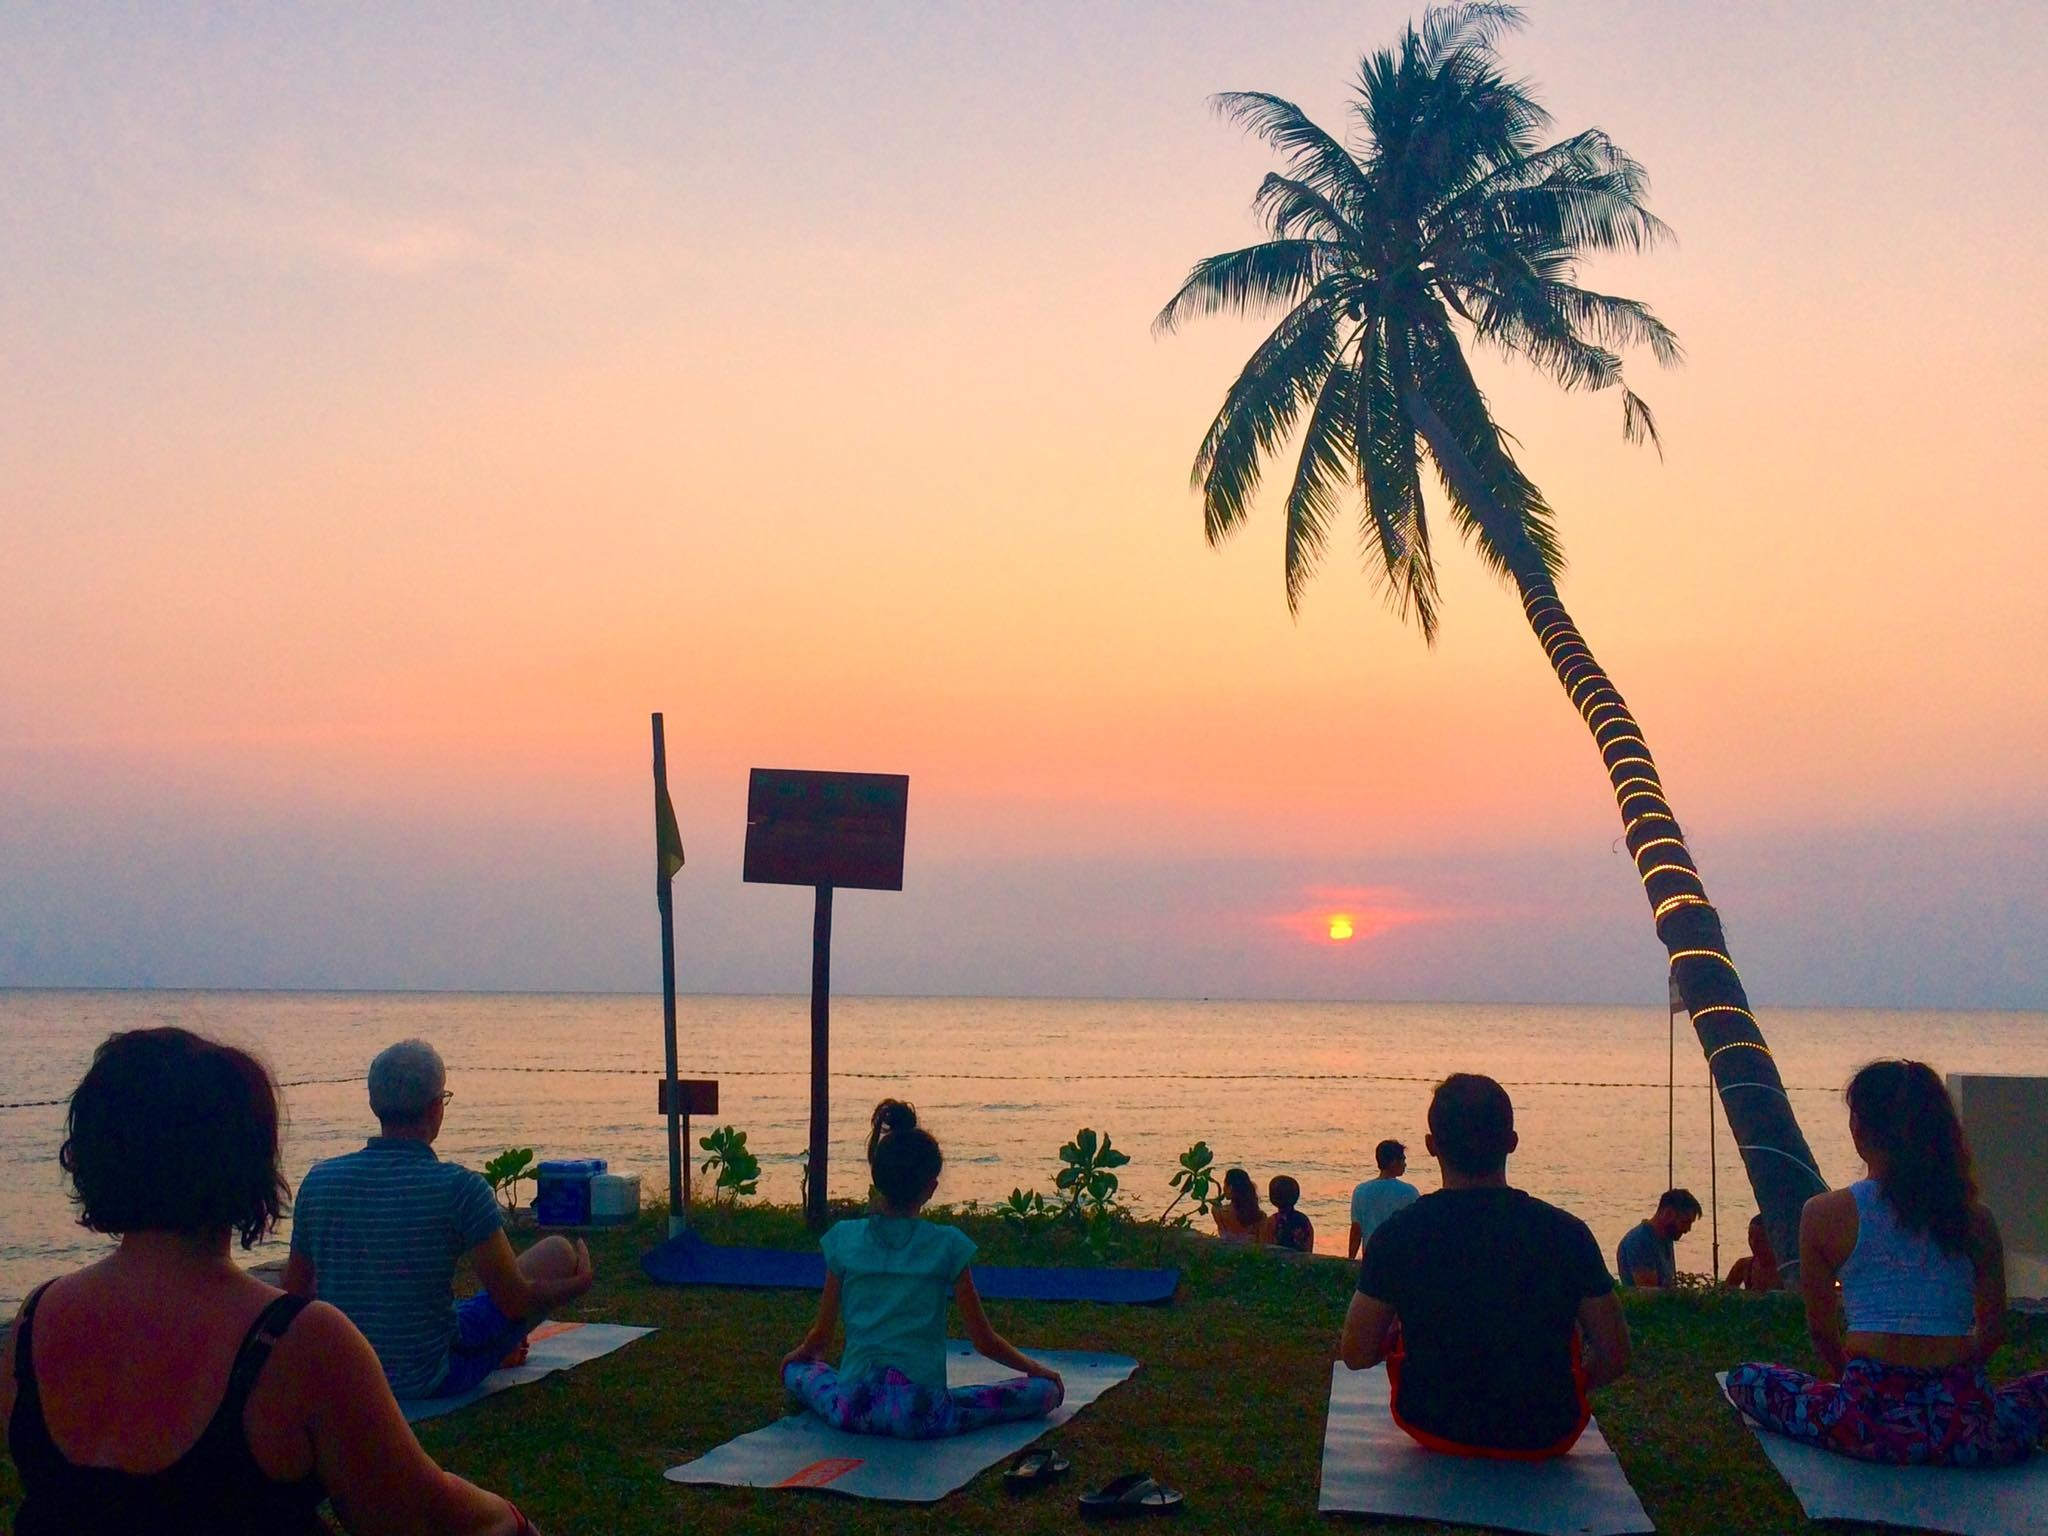 sunset-beach-meditation-cassia-cottage-retreat.jpg